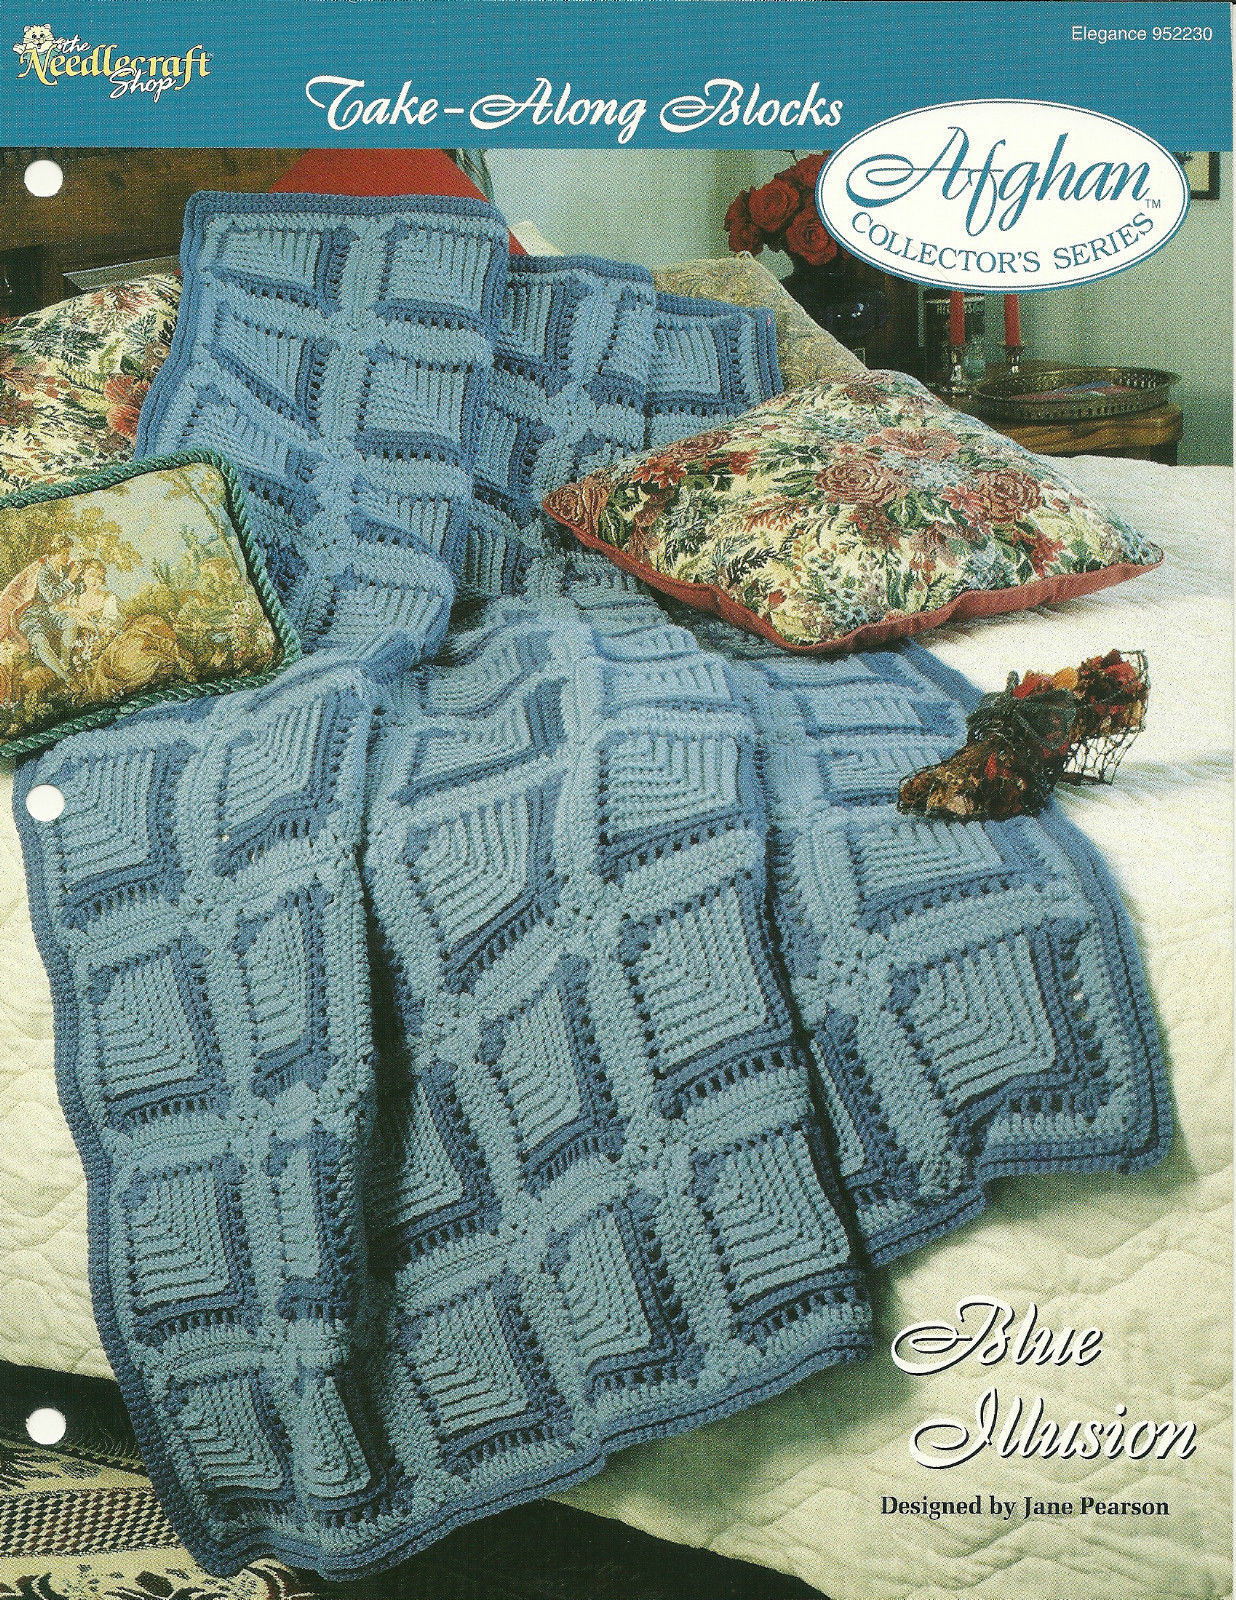 Needlecraft Shop Crochet Pattern 952230 Blue Illusion Afghan Collectors Series